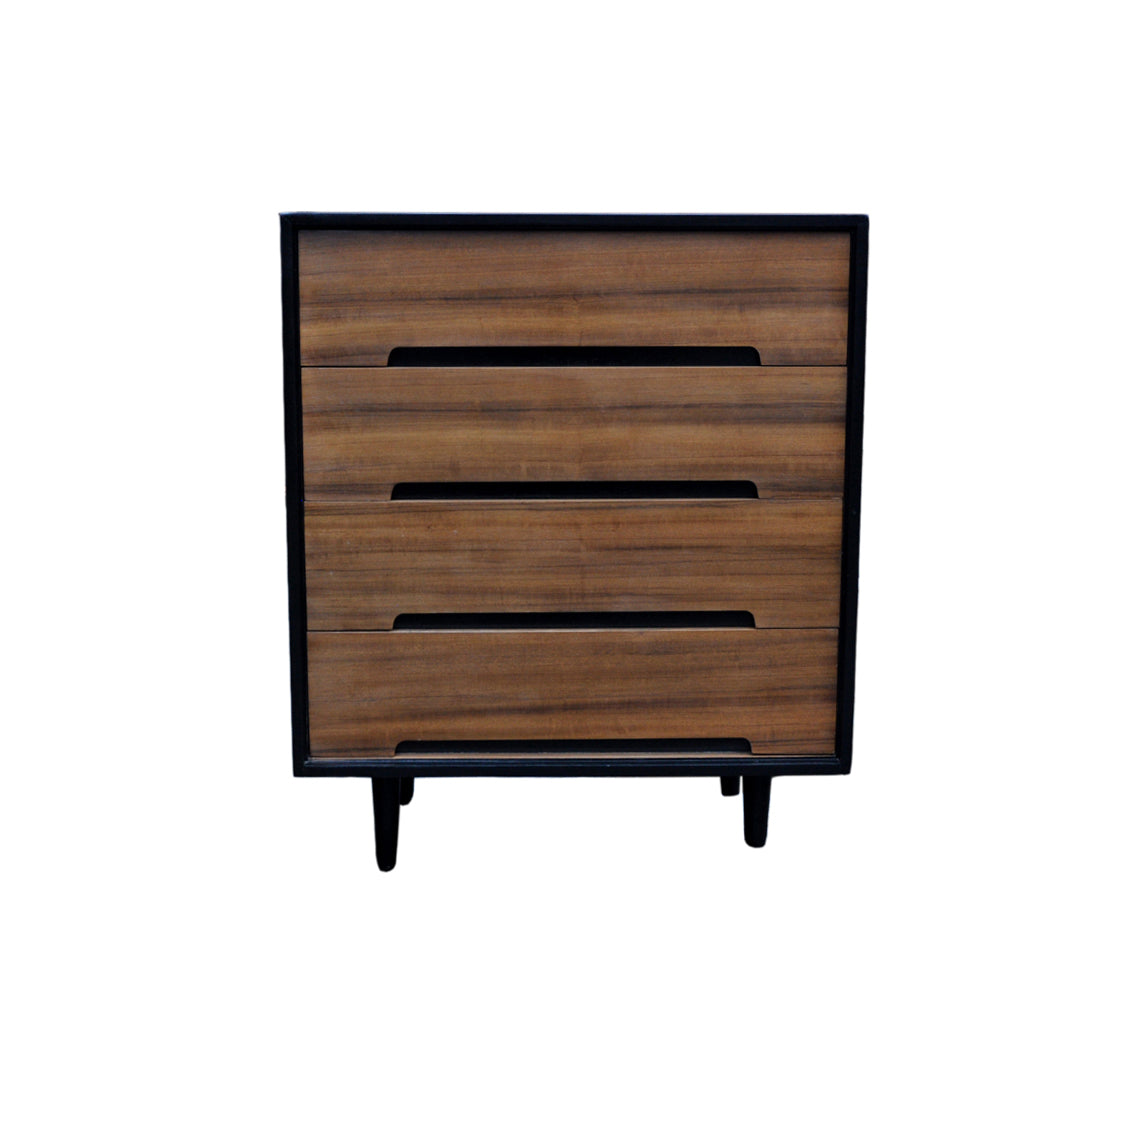 Stag C Range Chest of Four Drawers by John and Sylvia Reid